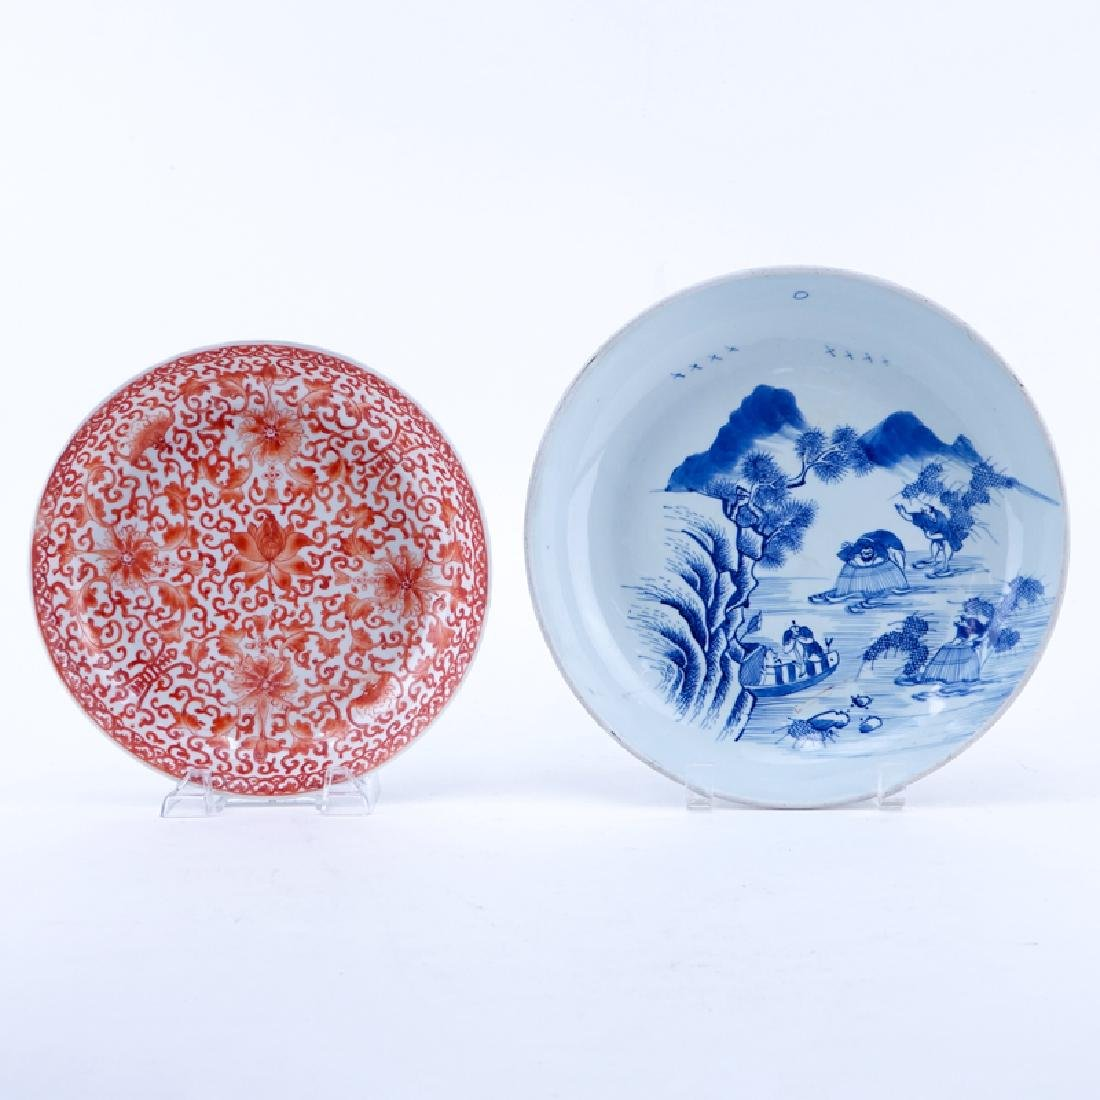 Two (2) Antique Chinese Porcelain Plates. One is